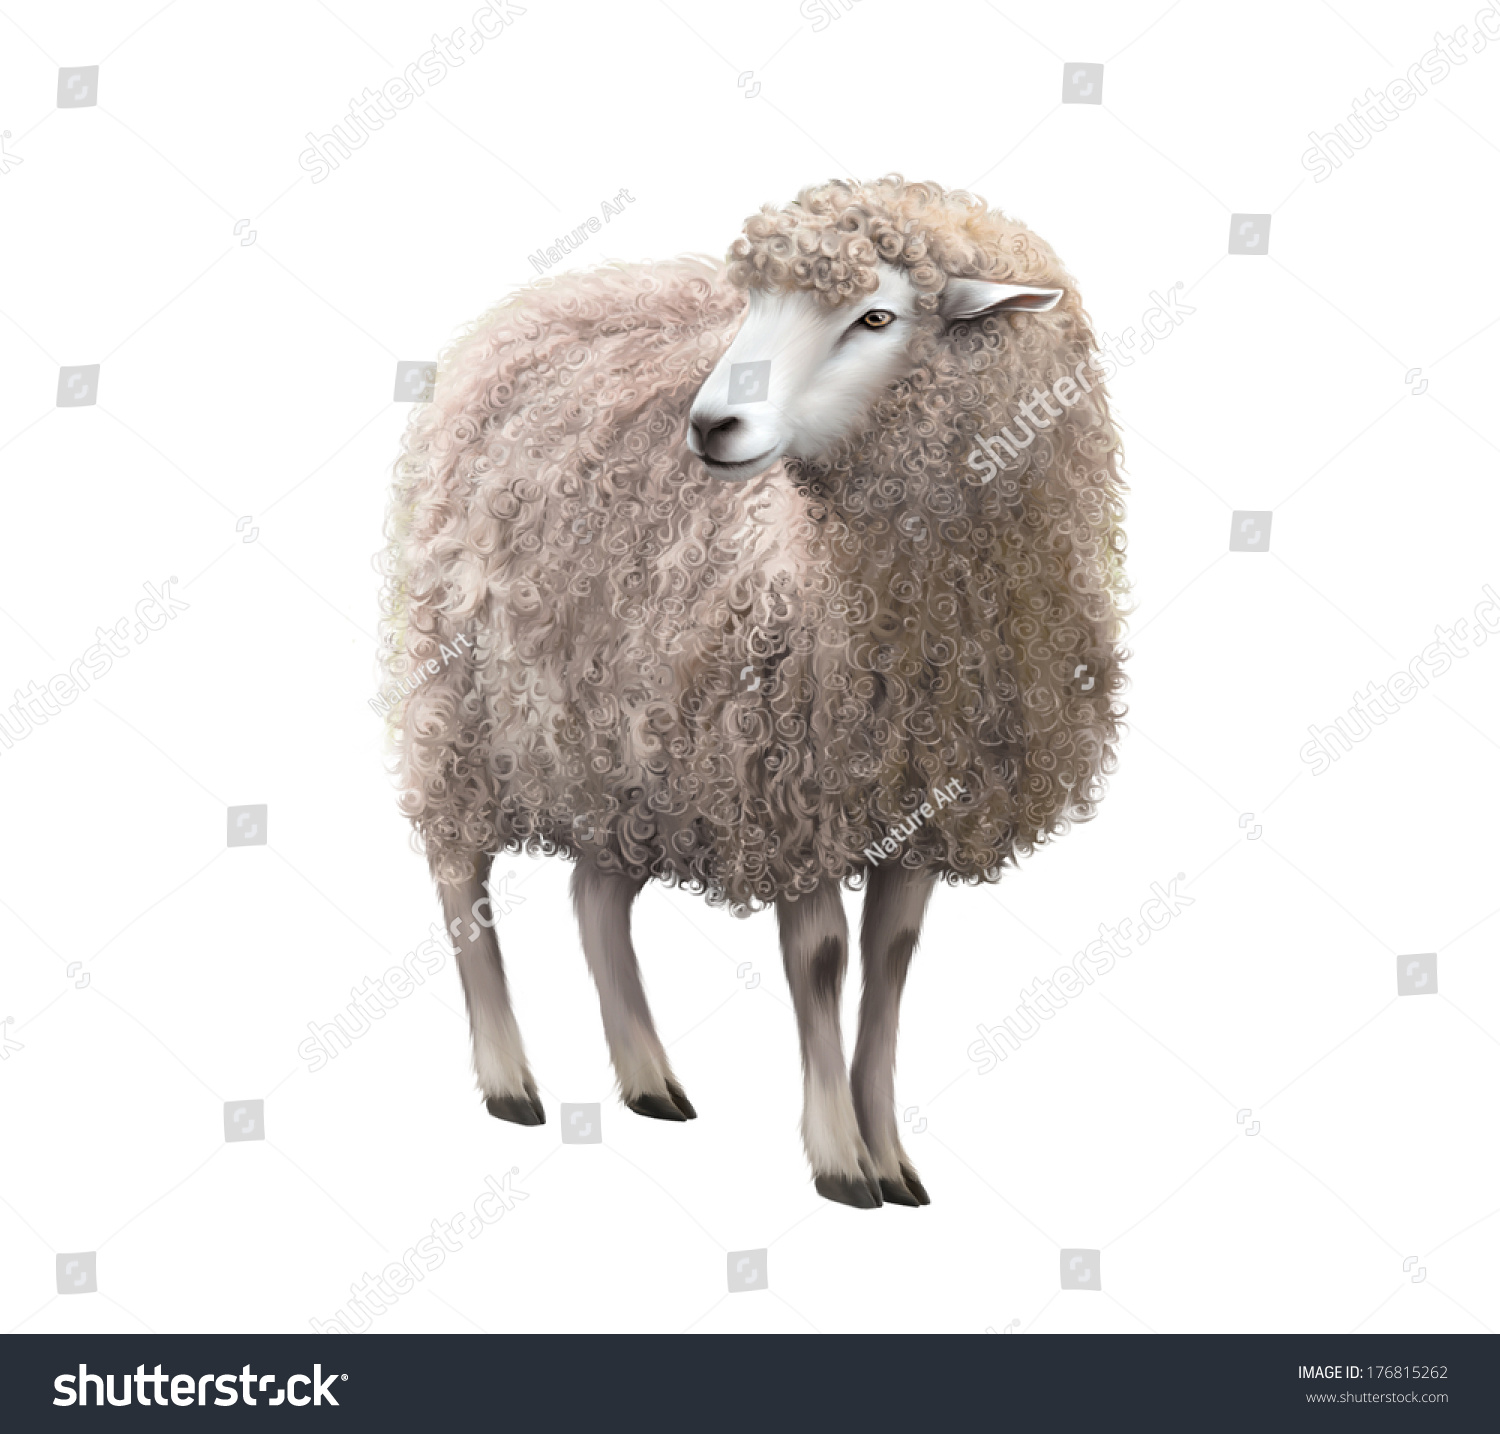 Front View Sheep Looking Away Illustration Stock